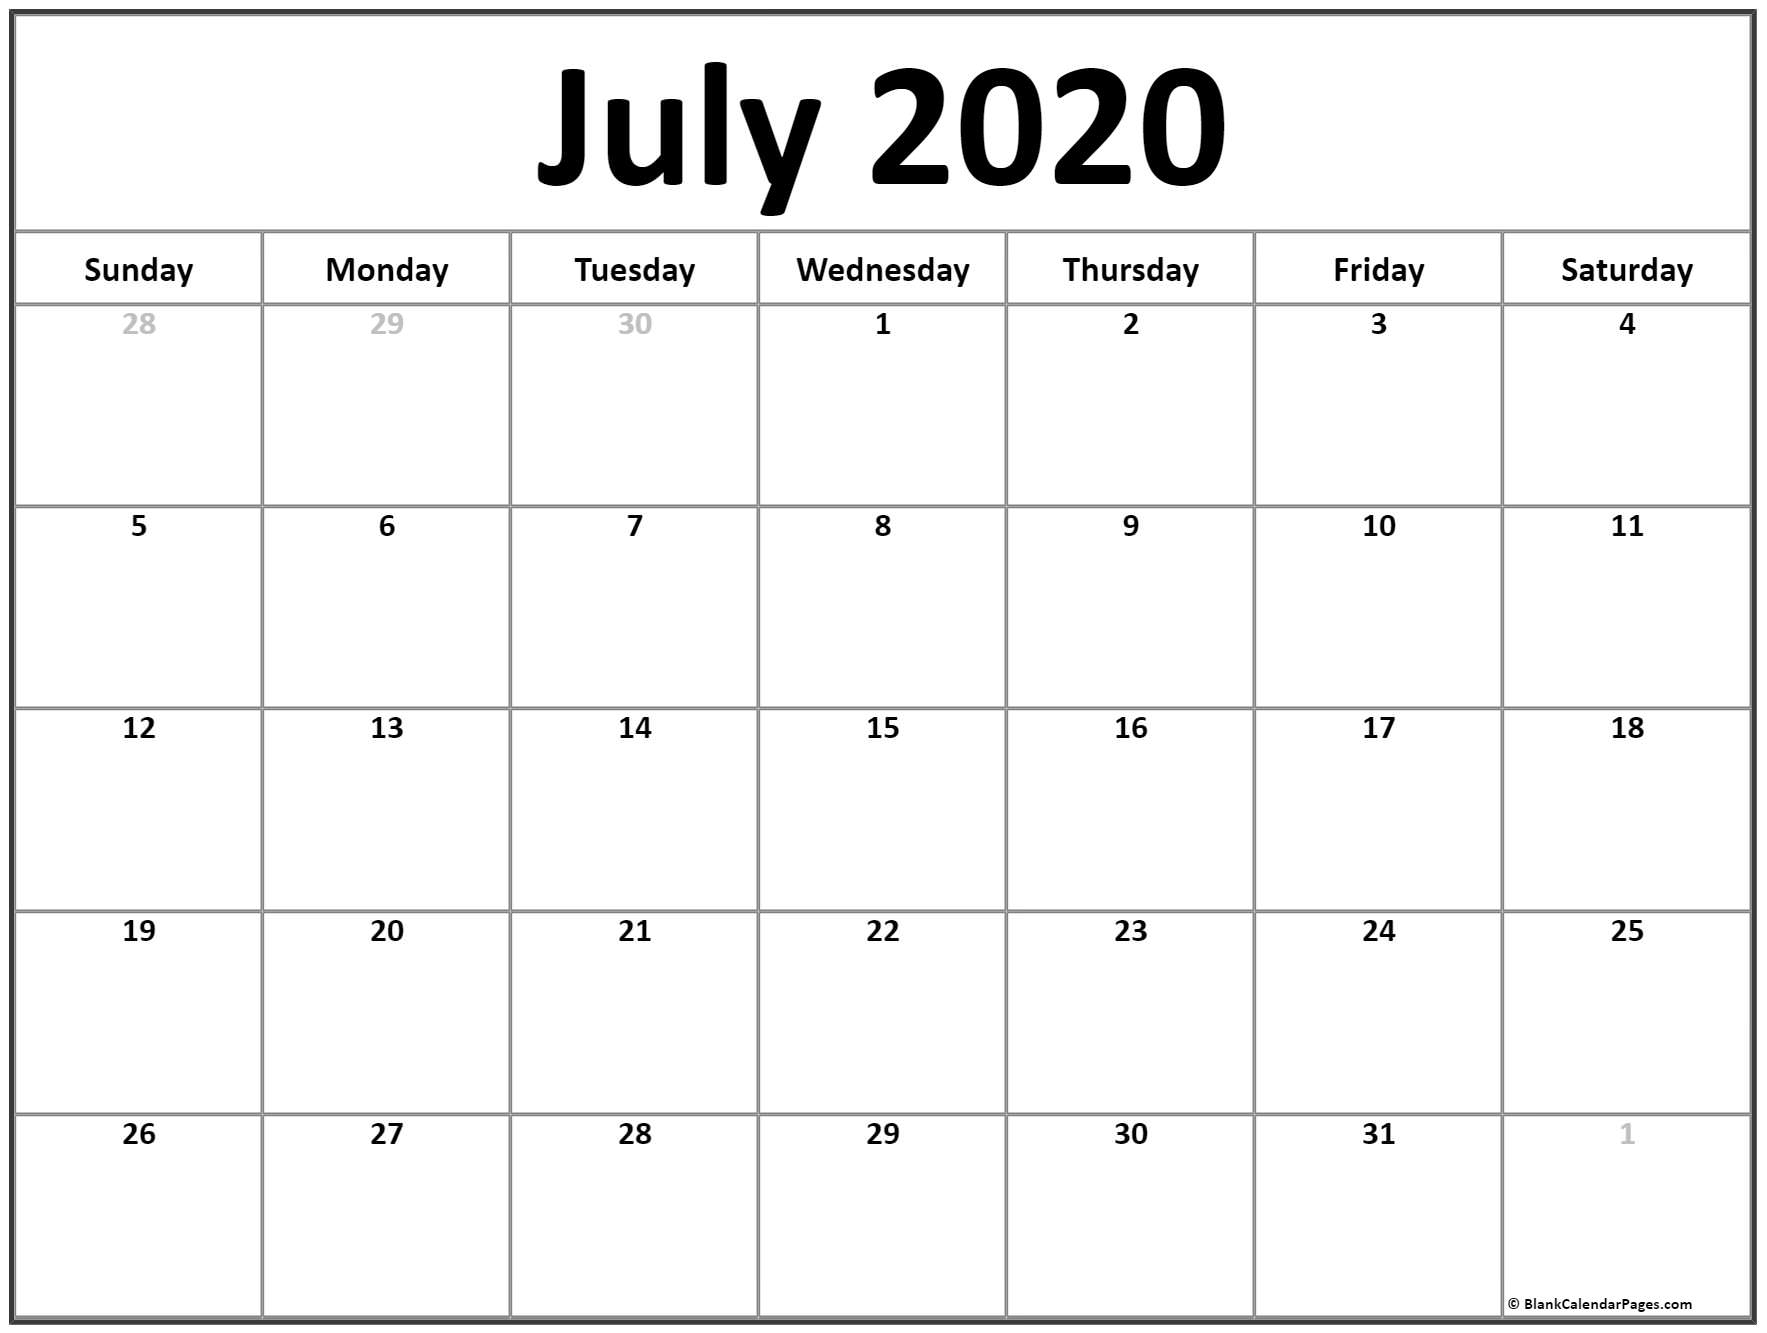 July 2020 Calendar | Free Printable Monthly Calendars throughout Print Free 2020 Calendar Without Downloading Weekly Writing